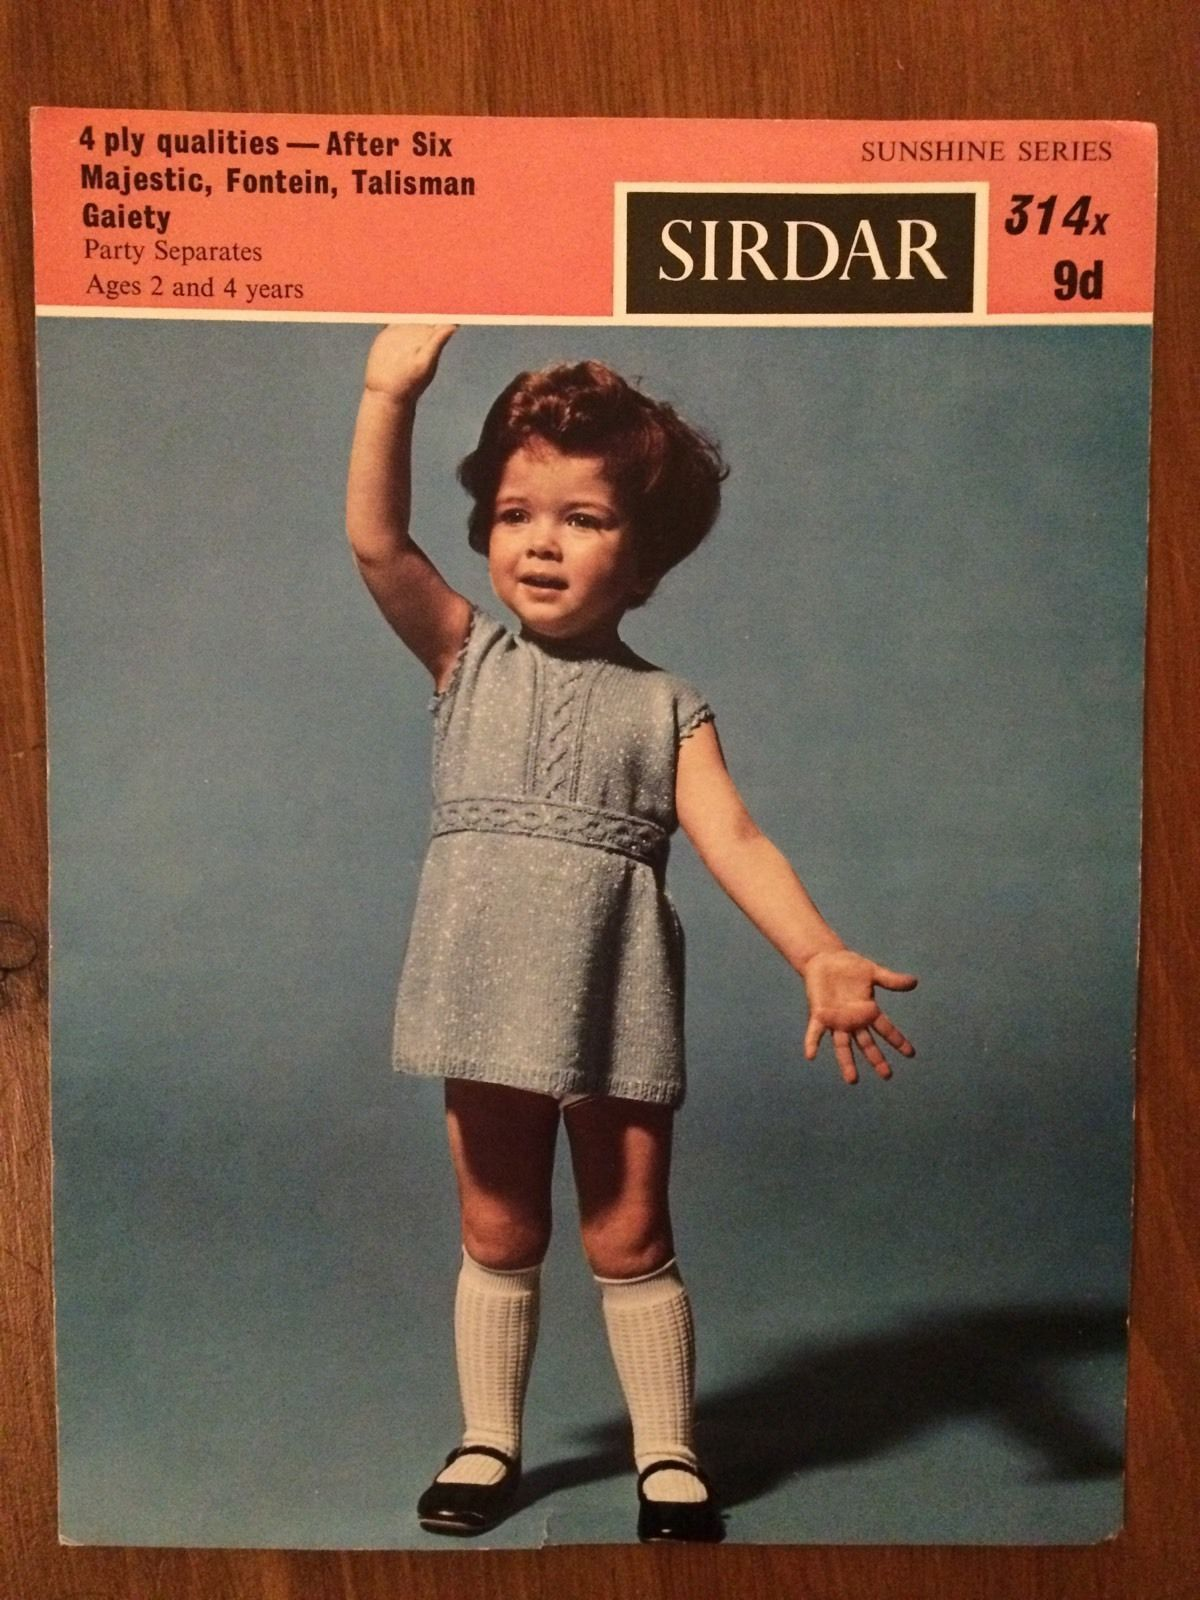 Sirdar 4ply knitting pattern 314x girls skirt jumper 22 24 sirdar 4ply knitting pattern 314x girls skirt jumper 22 24 chest bankloansurffo Image collections